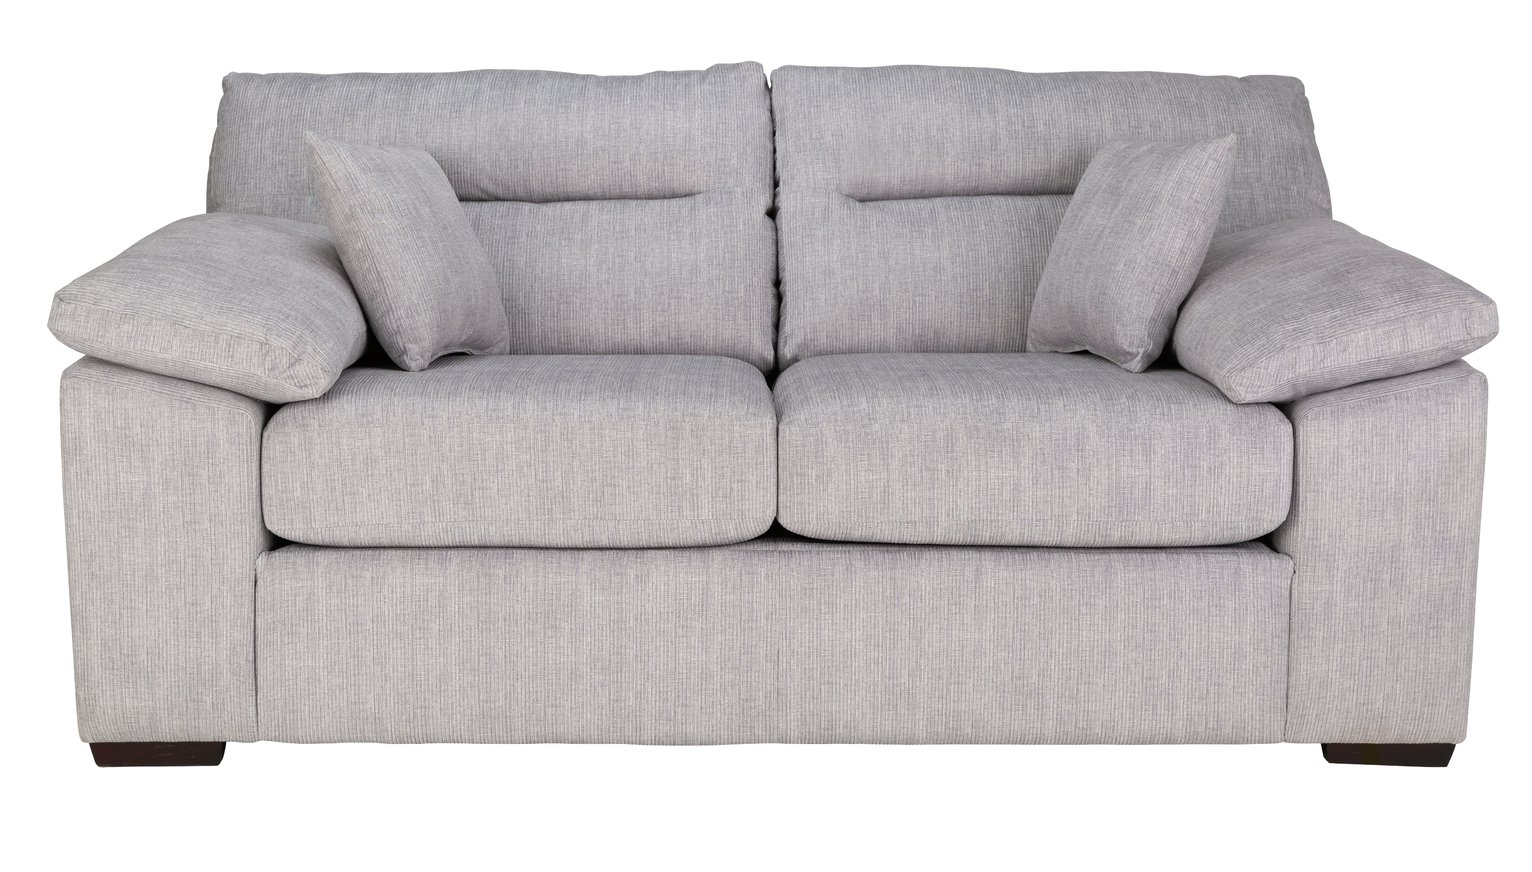 Argos Home Donavan 2 Seater Fabric Sofa Bed - Silver